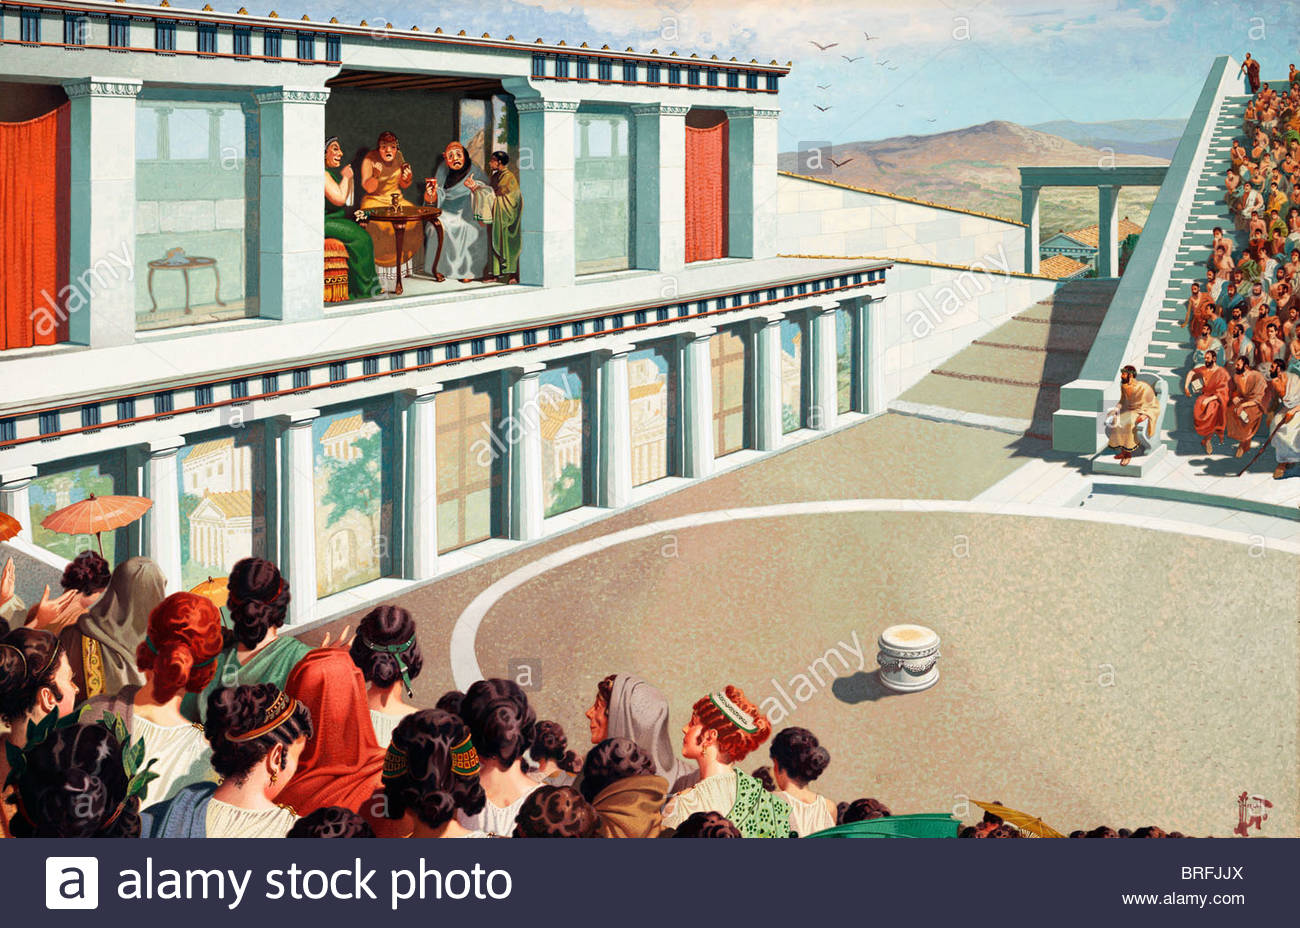 An audience watches a tragic play at an ancient Greek theater. - Stock Image